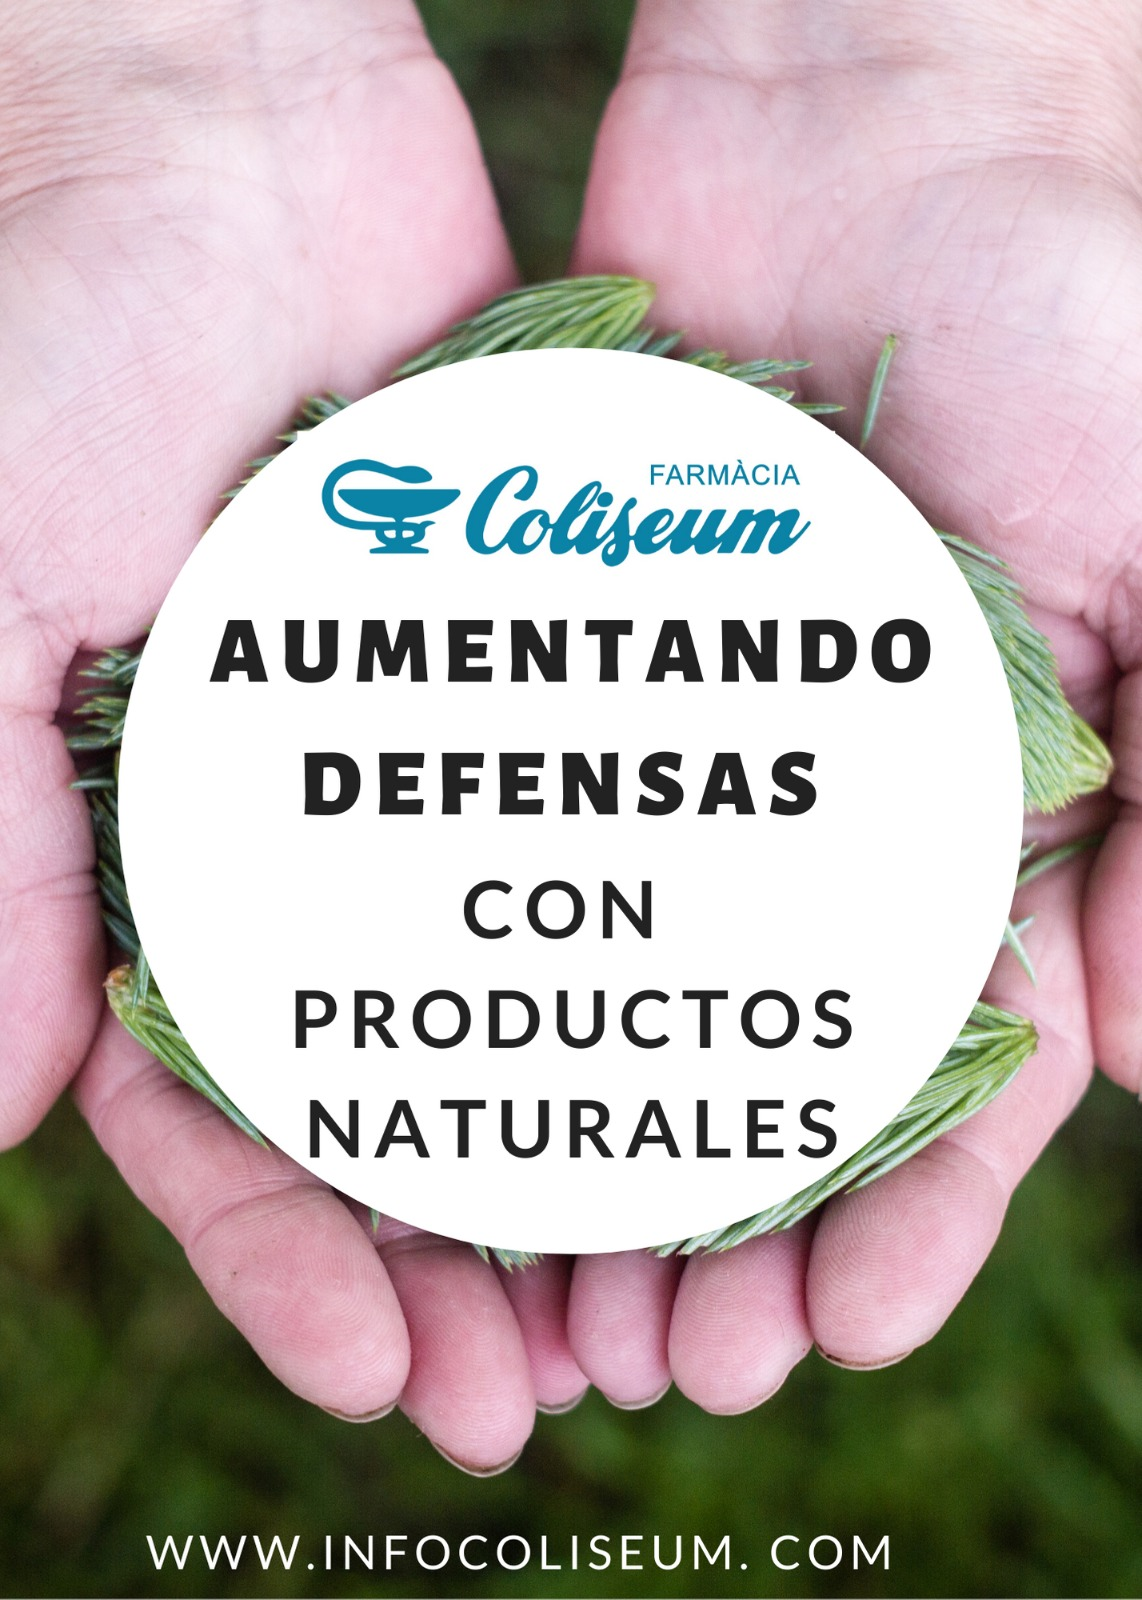 CANCELADO!! Activando las defensas con productos naturales